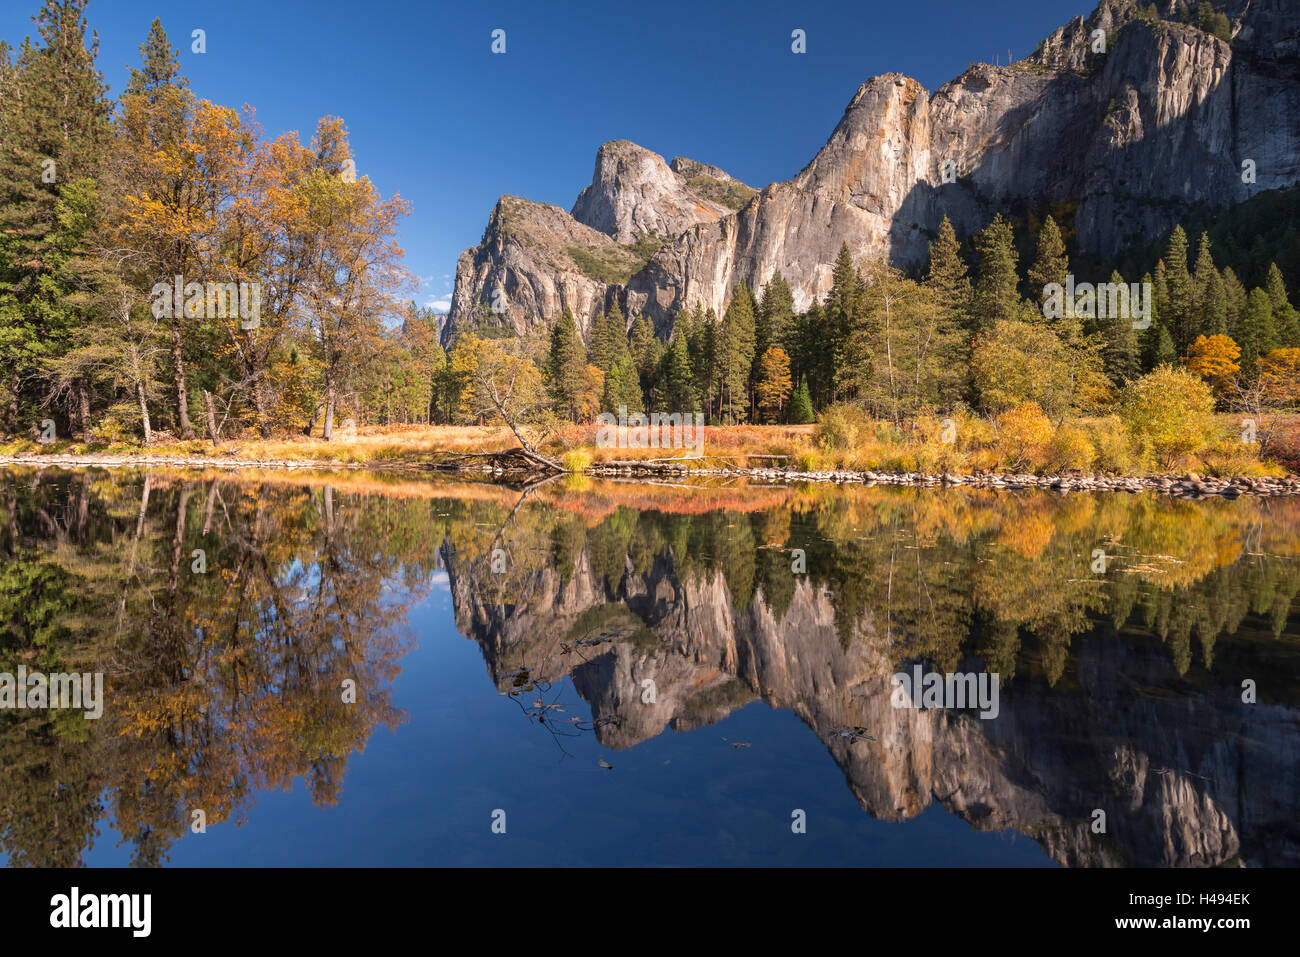 Yosemite Valley reflected in the Merced River at Valley View, Yosemite National Park, California, USA. Autumn (October) - Stock Image